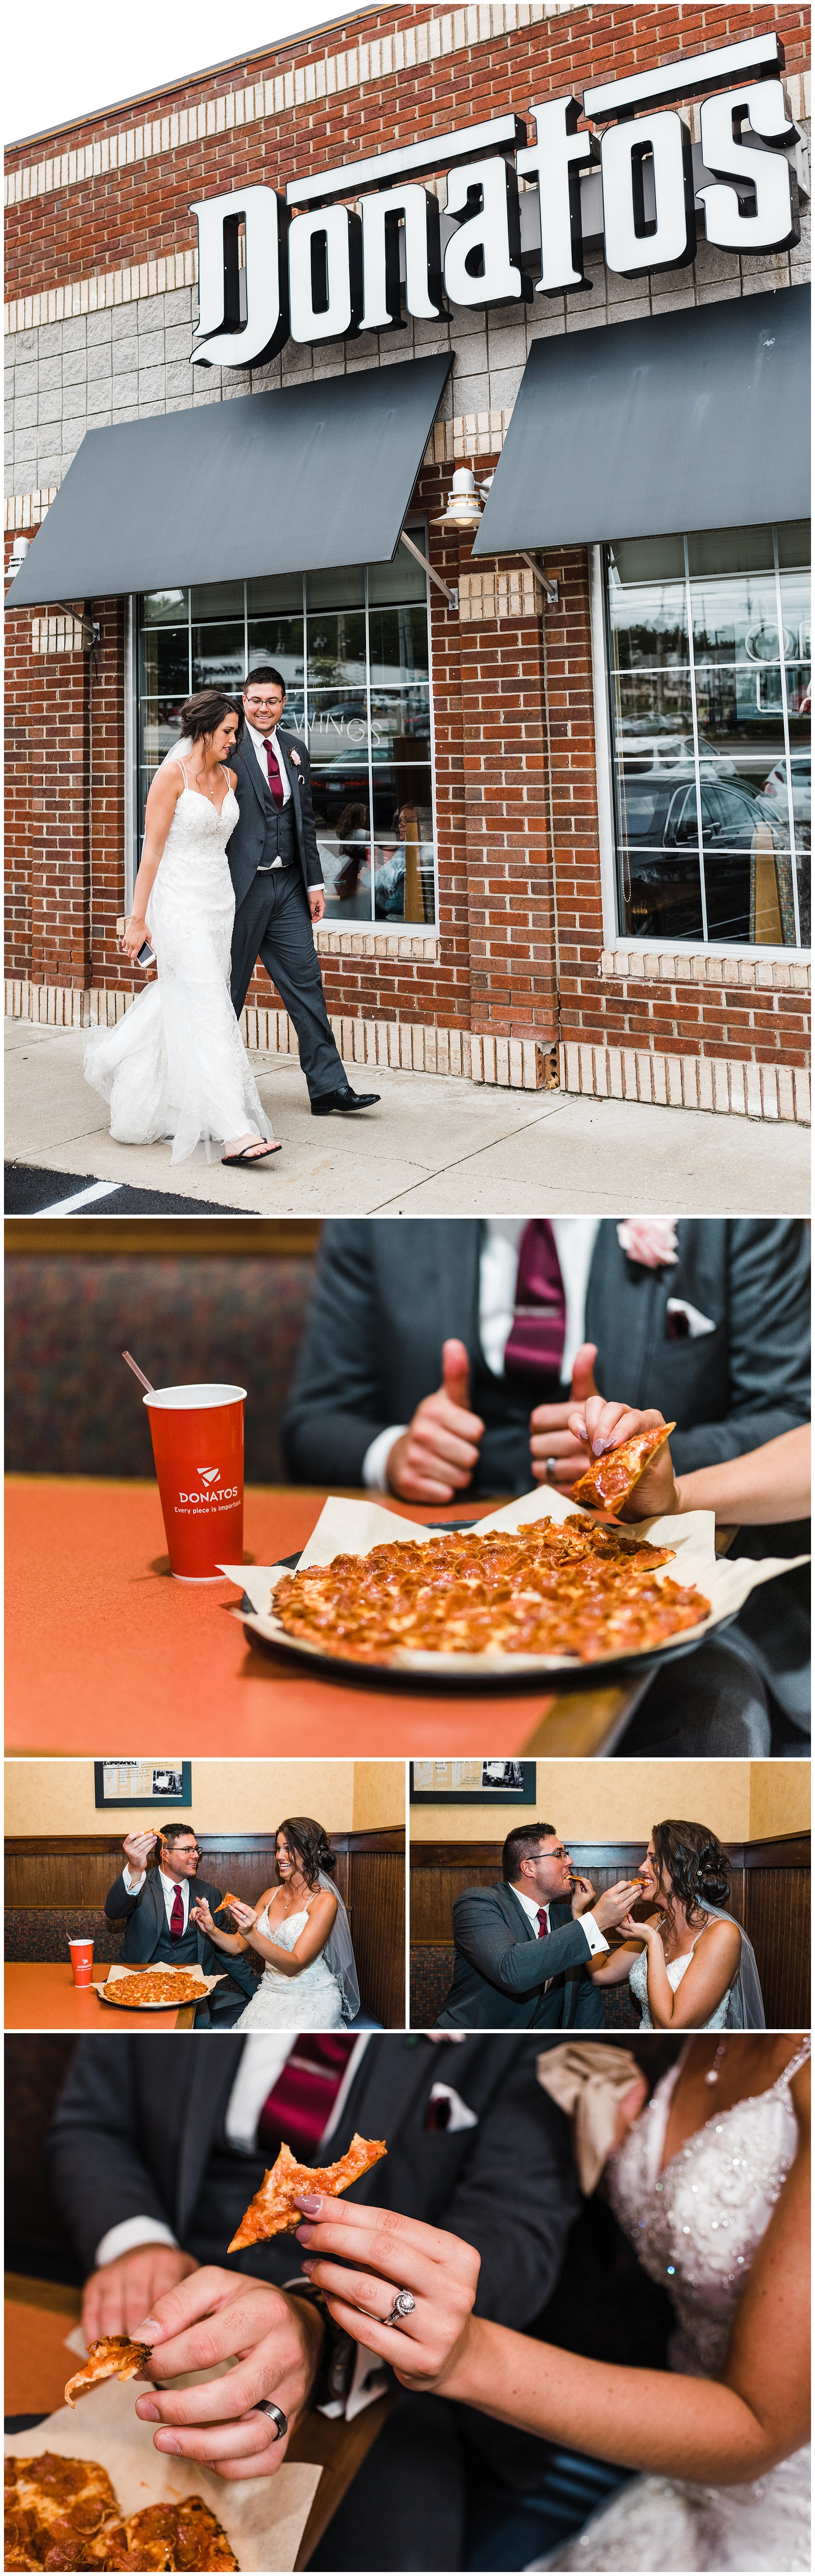 Easterday Creative | Adventurous wedding photographer and storyteller | Charlotte, NC | Shannon + Jeff Wedding